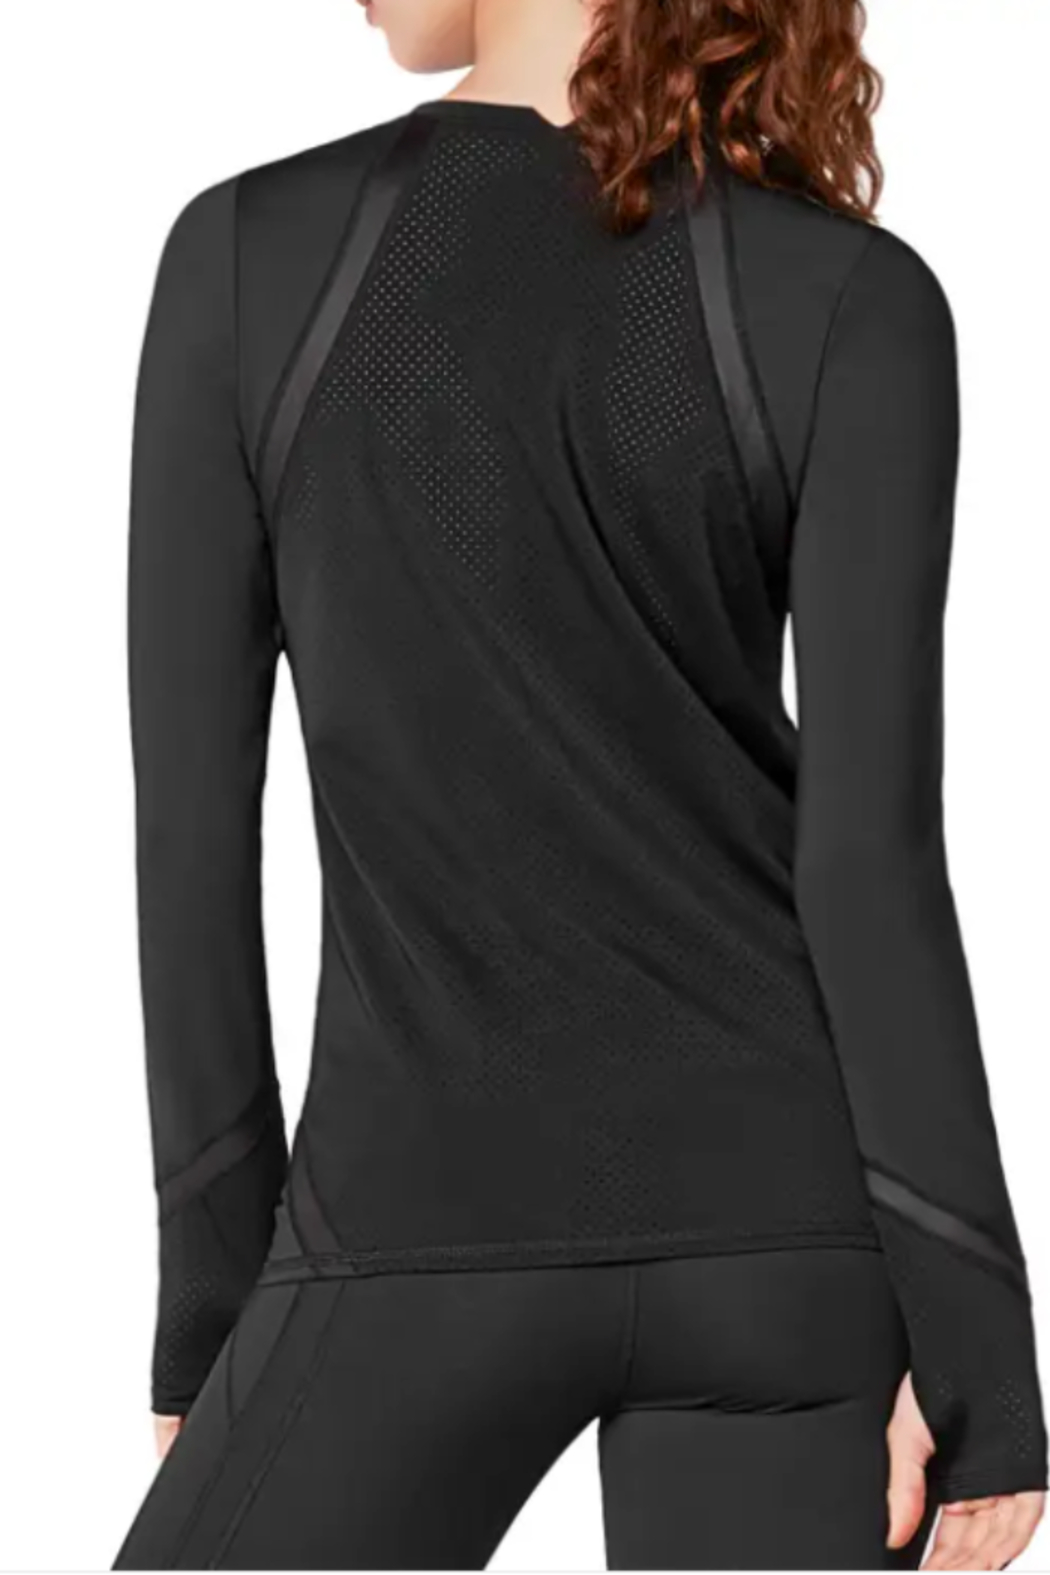 urban savage Urban Savage Grey and Black Long Sleeve work out tee with perforated trim and arm holes at the hem of the sleeve - Front Full Image